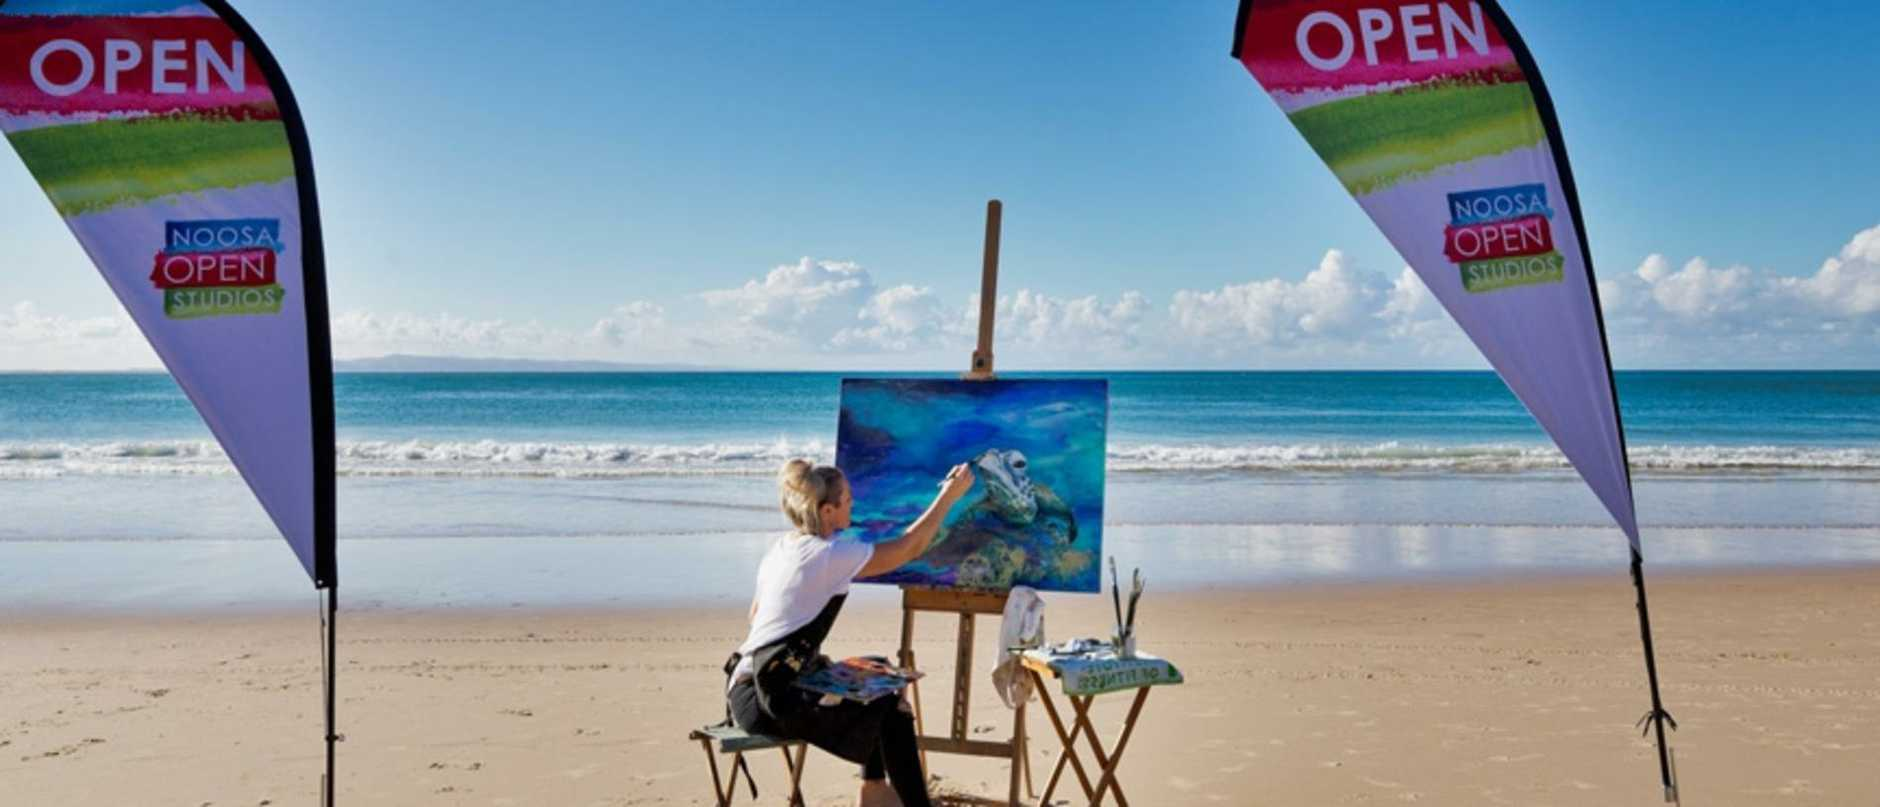 Last year's promotion for the Noosa Open Studios.